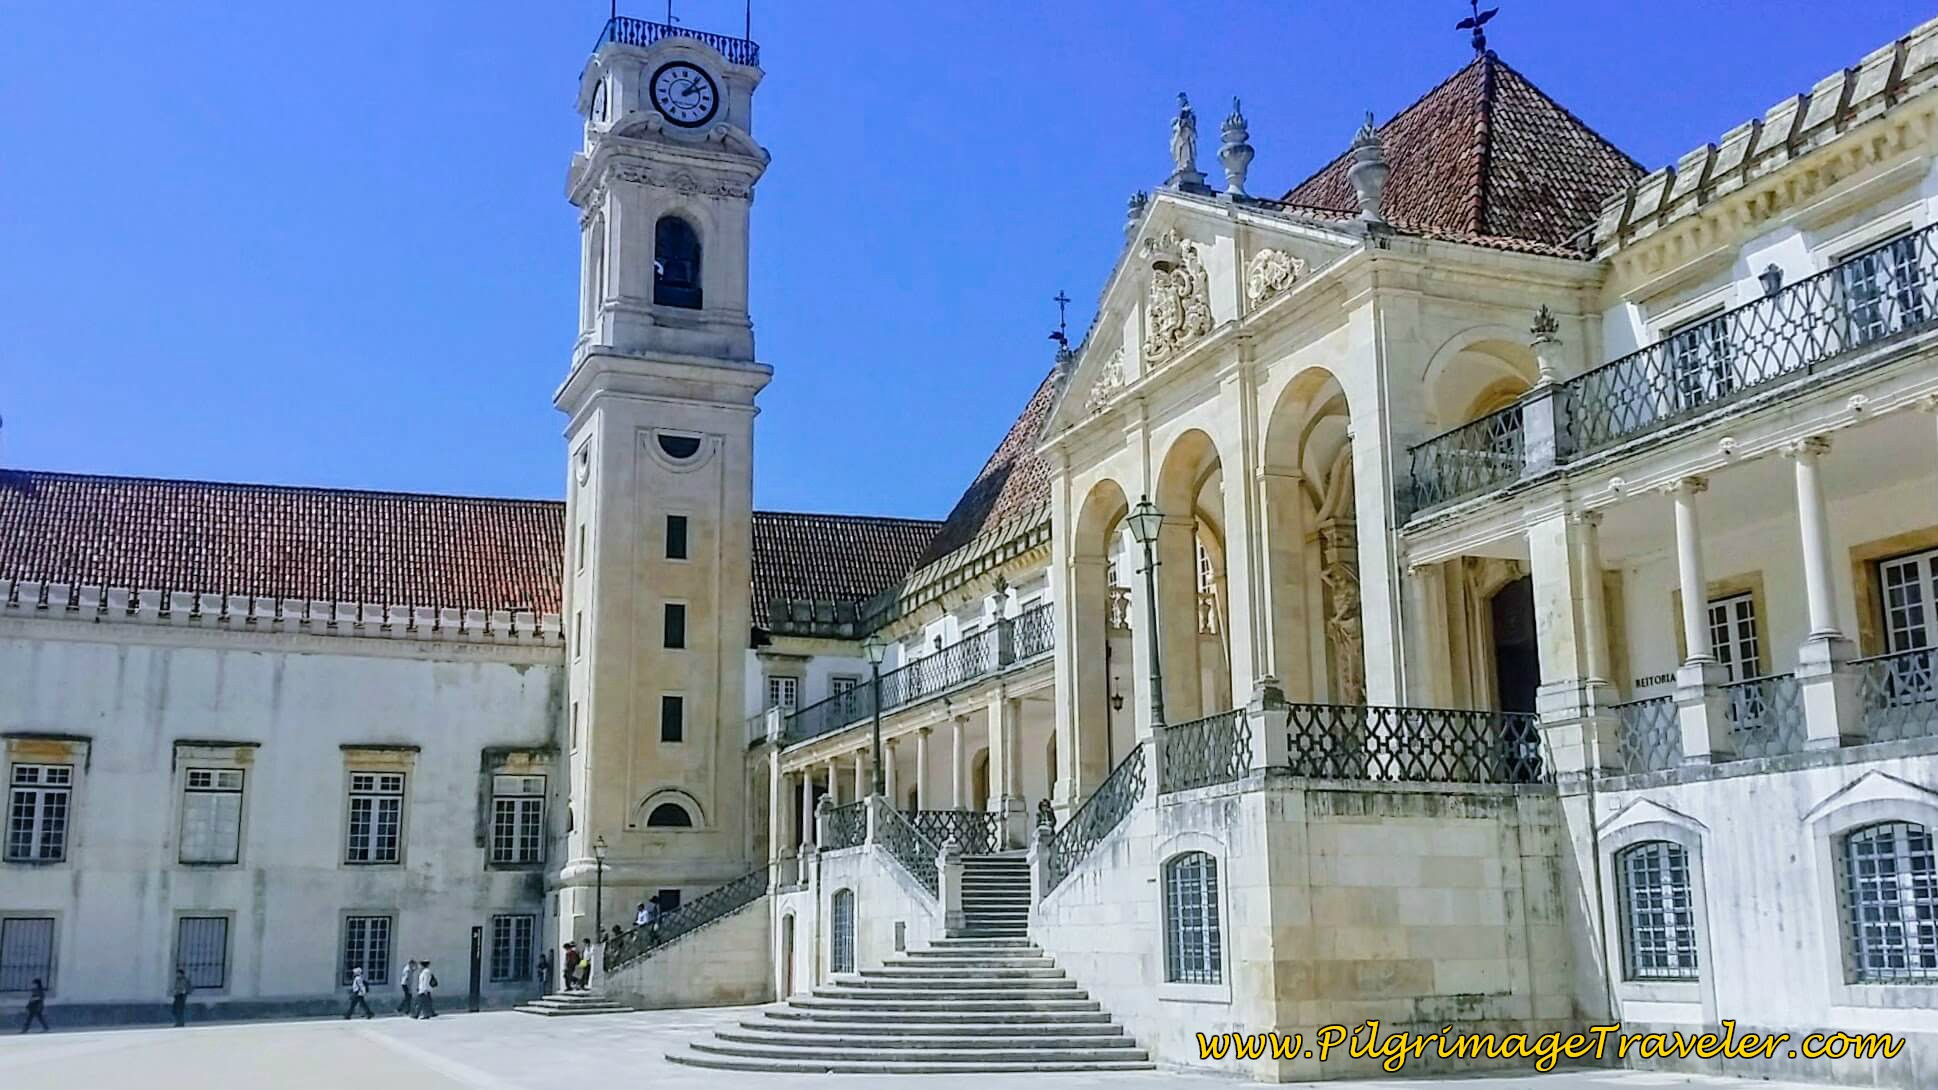 The University Clock Tower in the Paço das Escolas, University of Coimbra